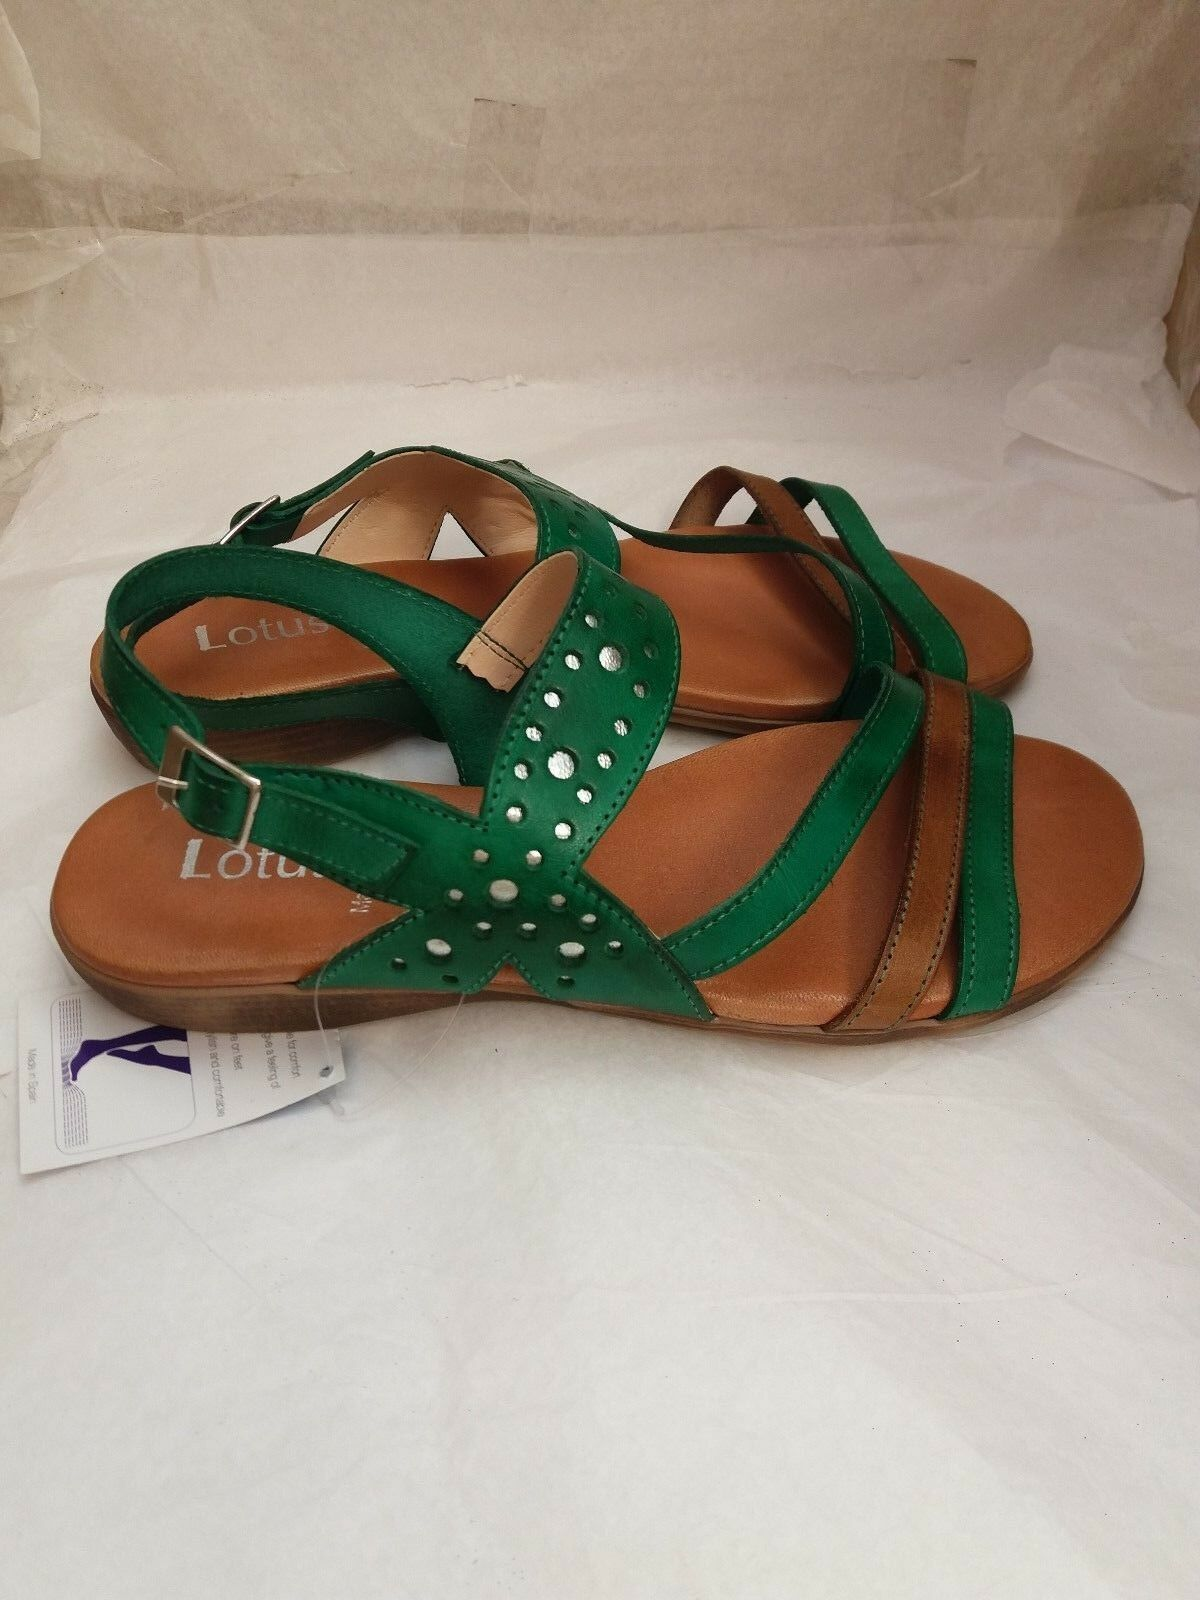 Lotus Gelstep Leather Wedge Sandals UK Size 7 EU 40 New with Tags